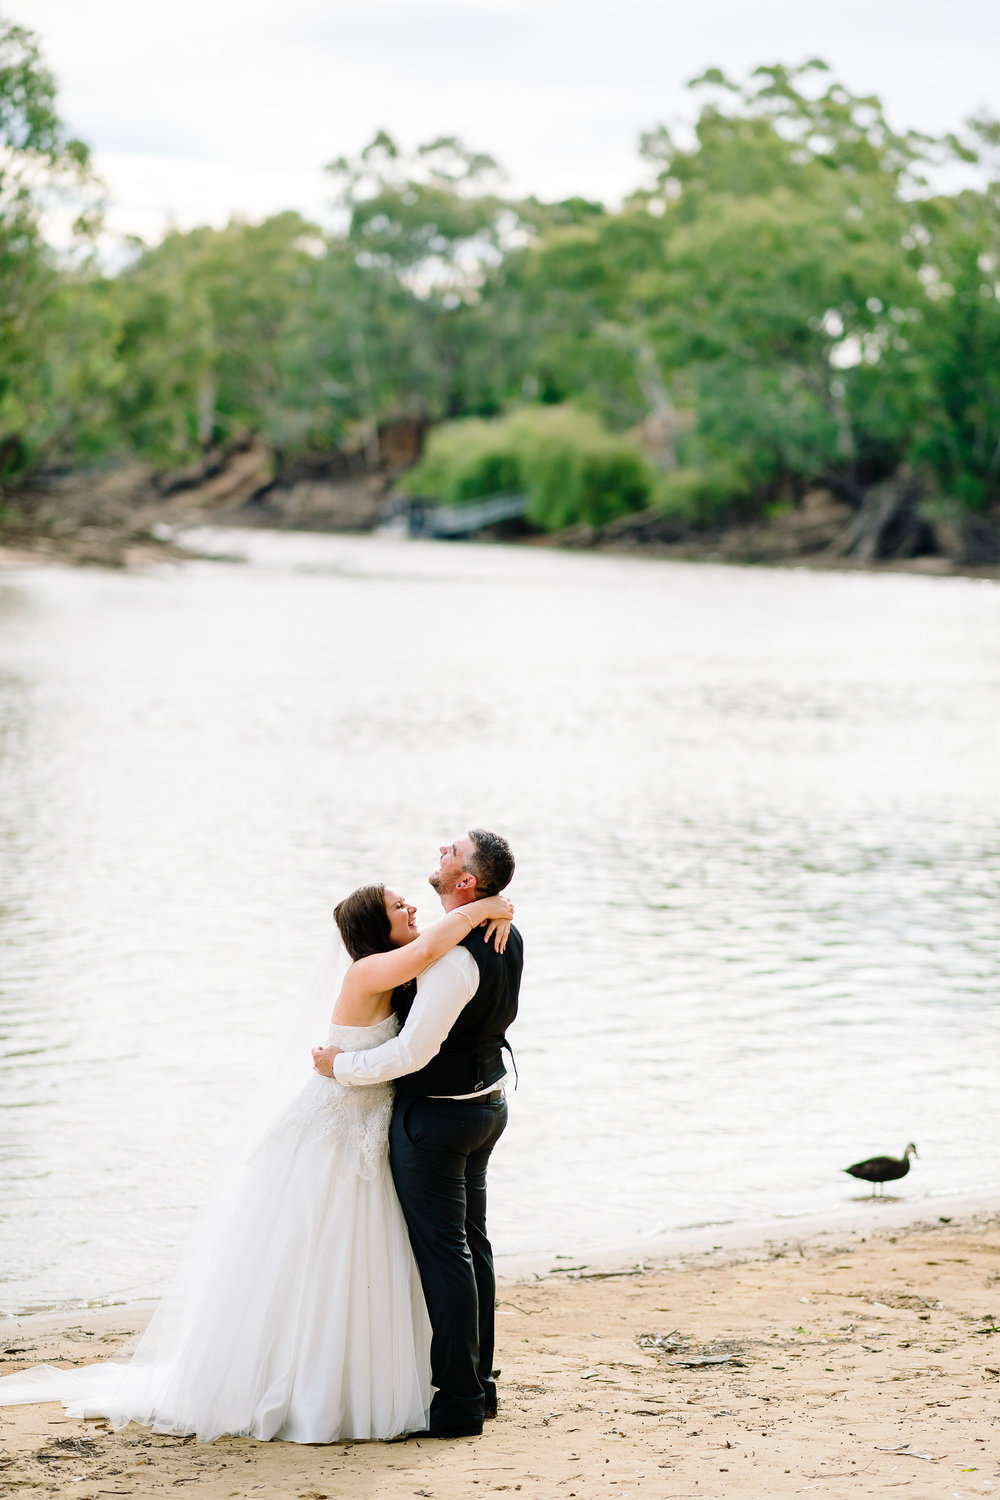 Justin_Jim_Echuca_Wedding_Photography_Tindarra-231.JPG